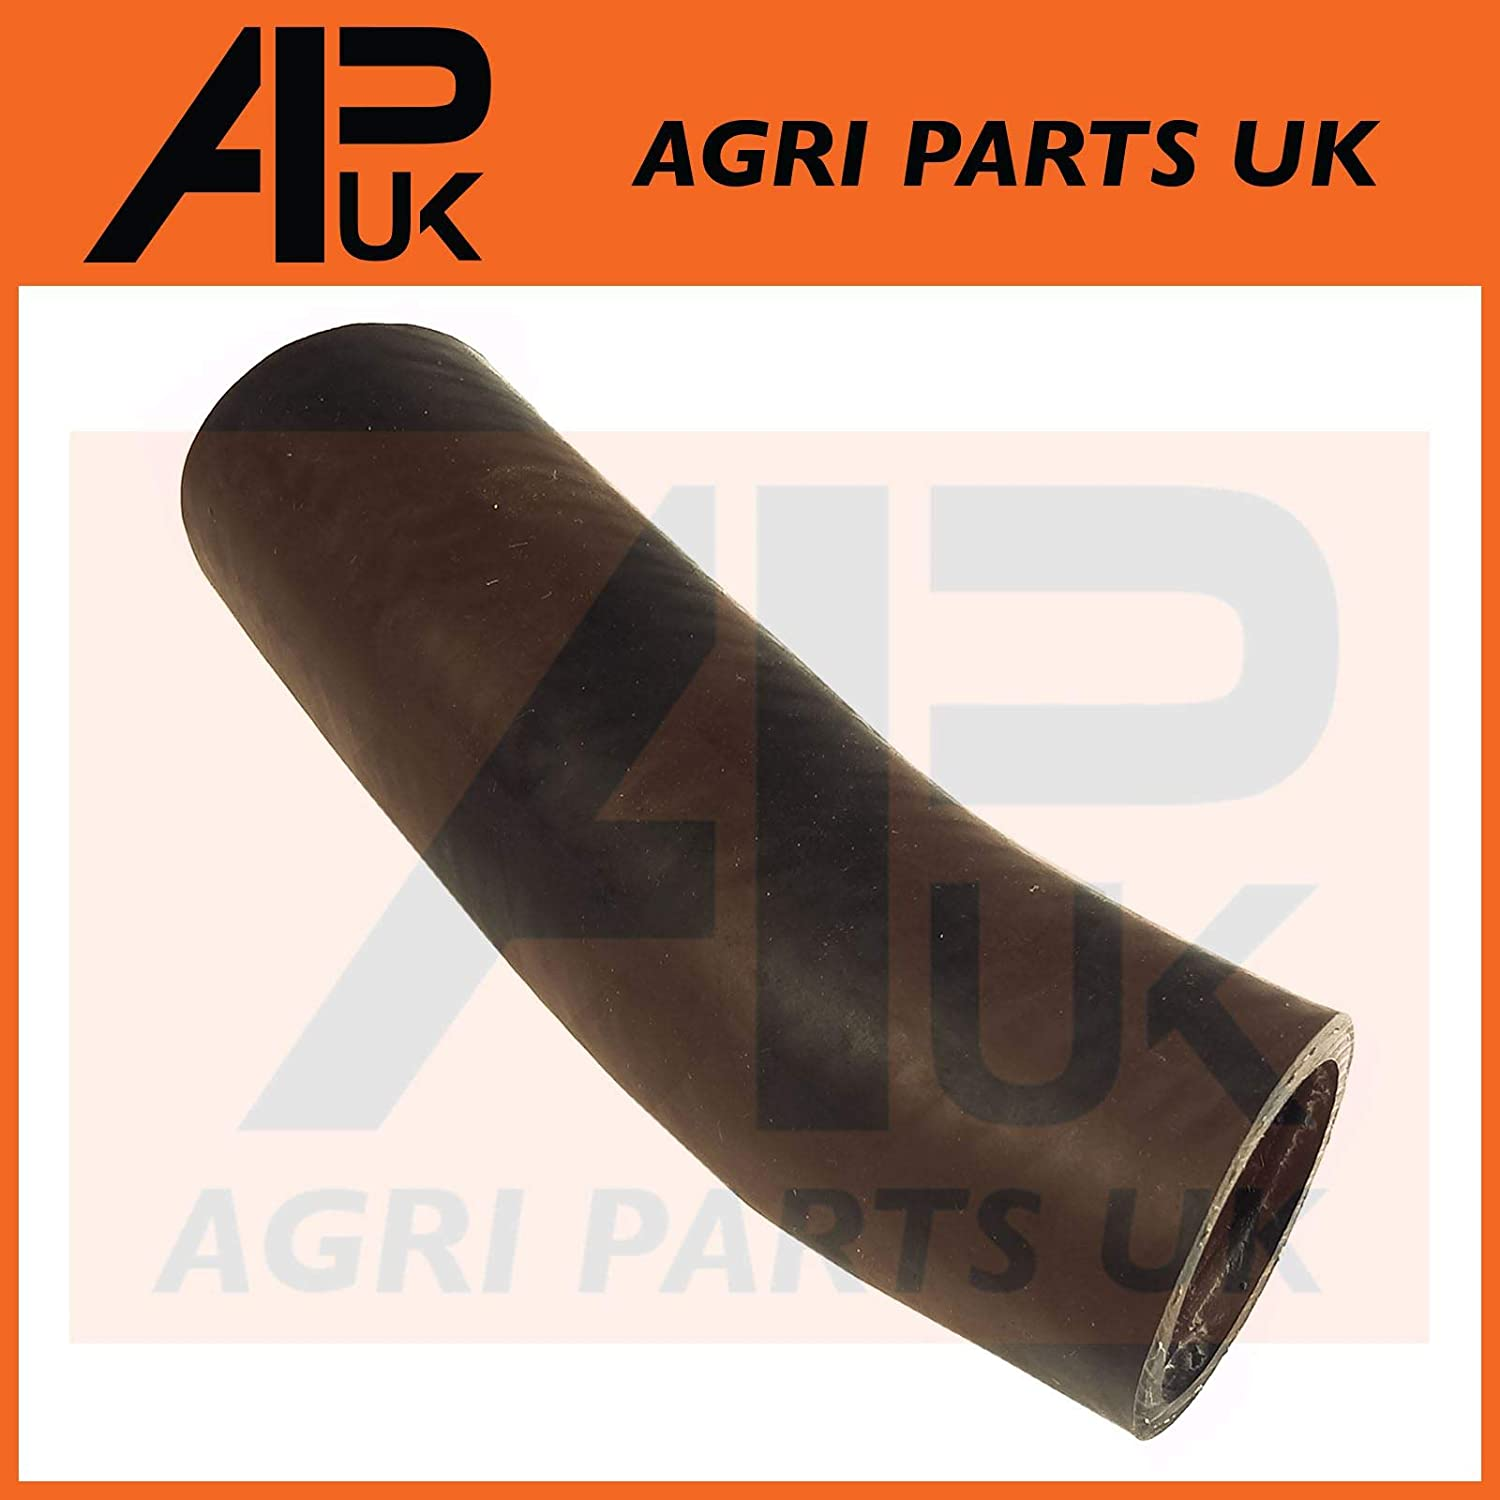 Radiator Water Top hose tube pipe compatible with Massey Ferguson 35 35X Tractor /& Perkins A3.152 Engine